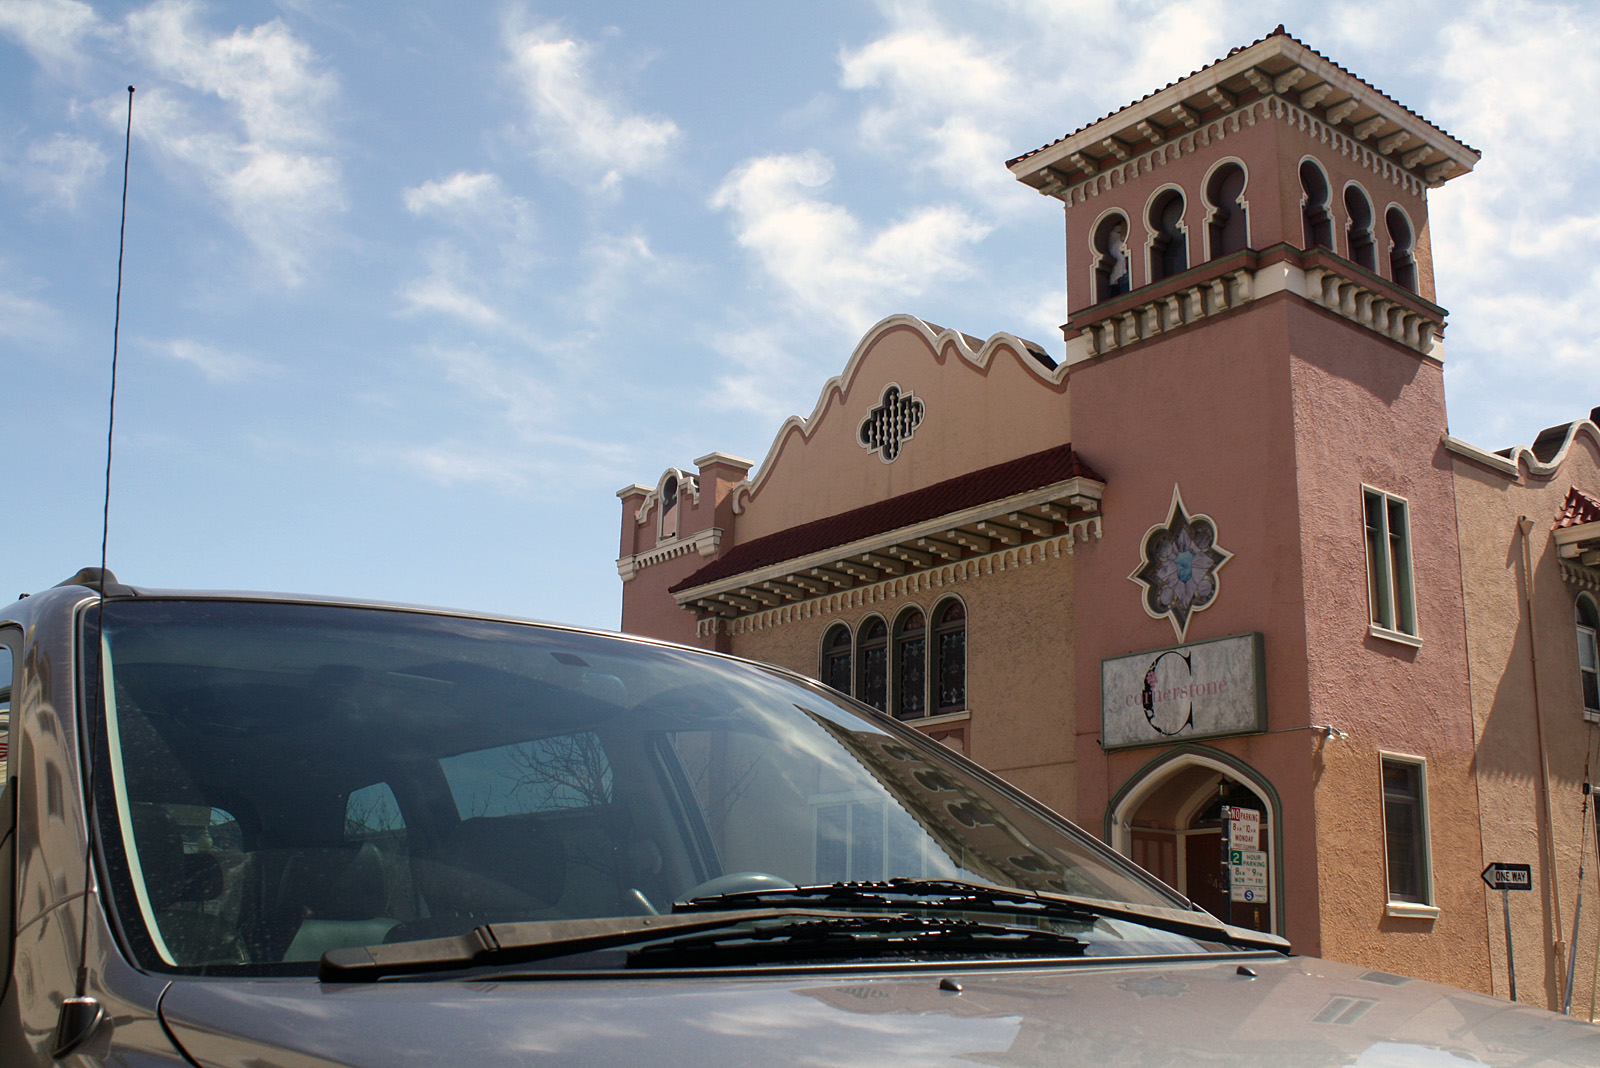 Residents Blame Churchgoers for Parking Woes